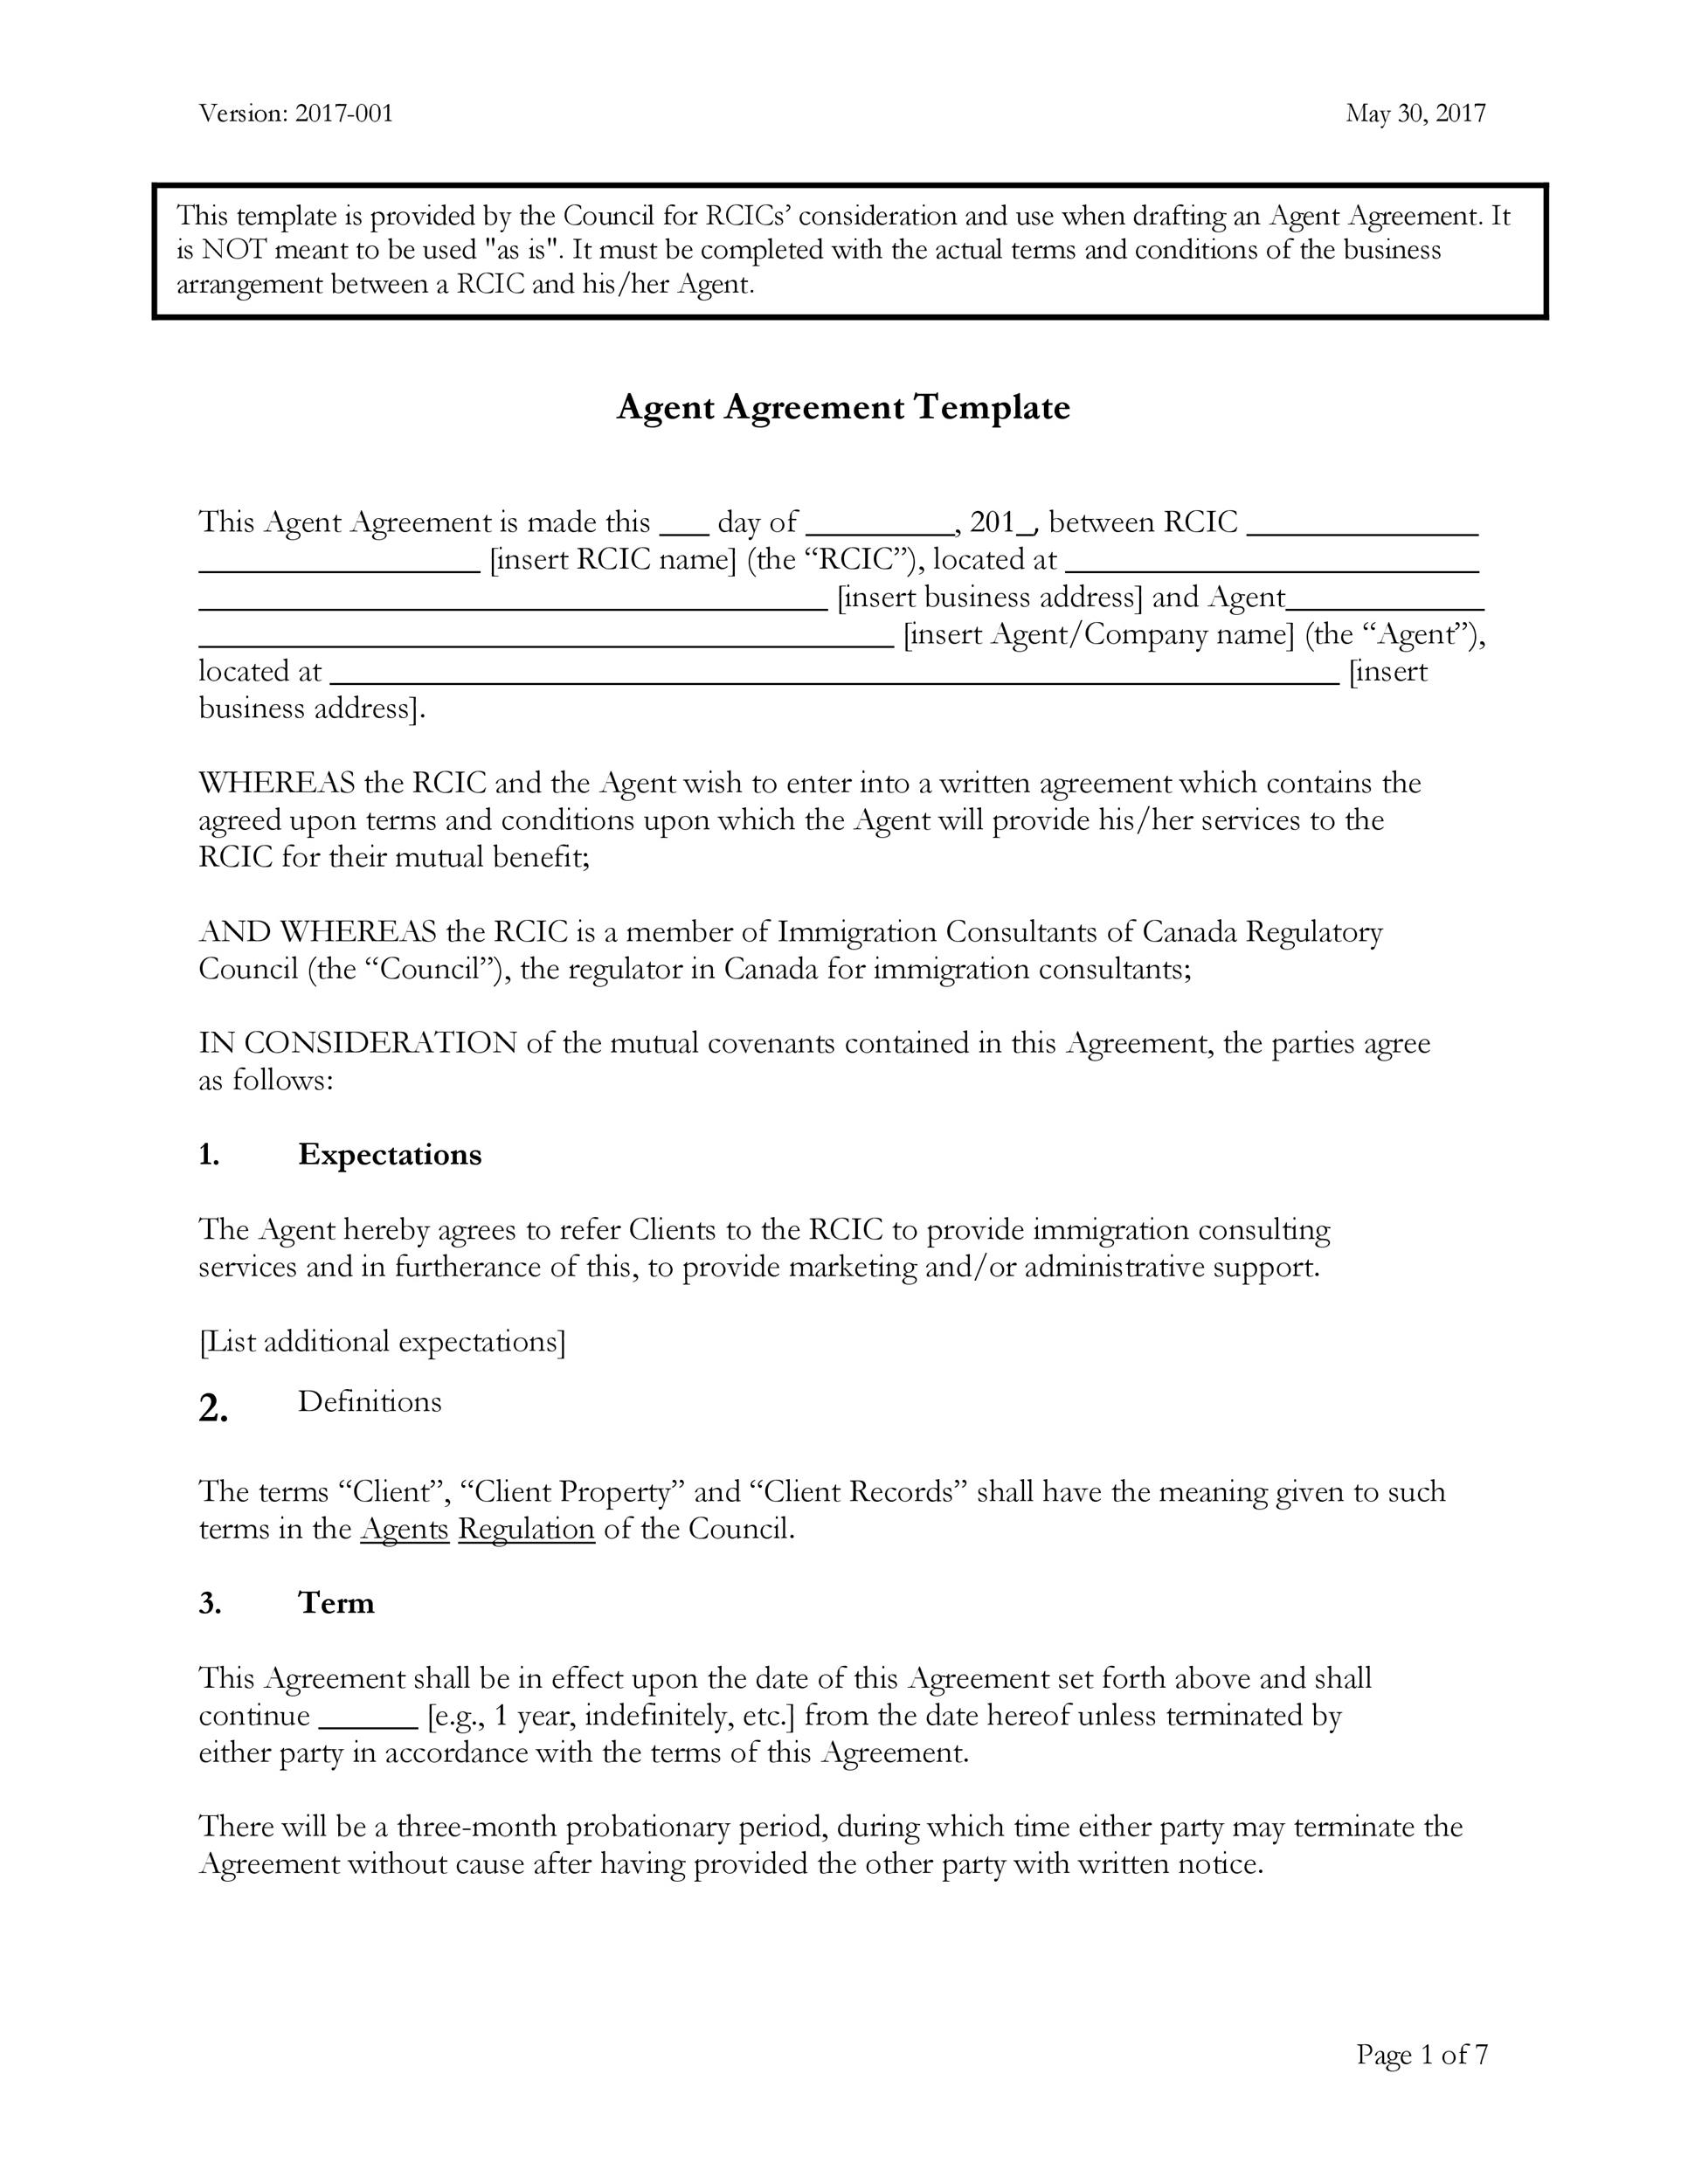 Exclusive Representation Agreement Template from templatelab.com